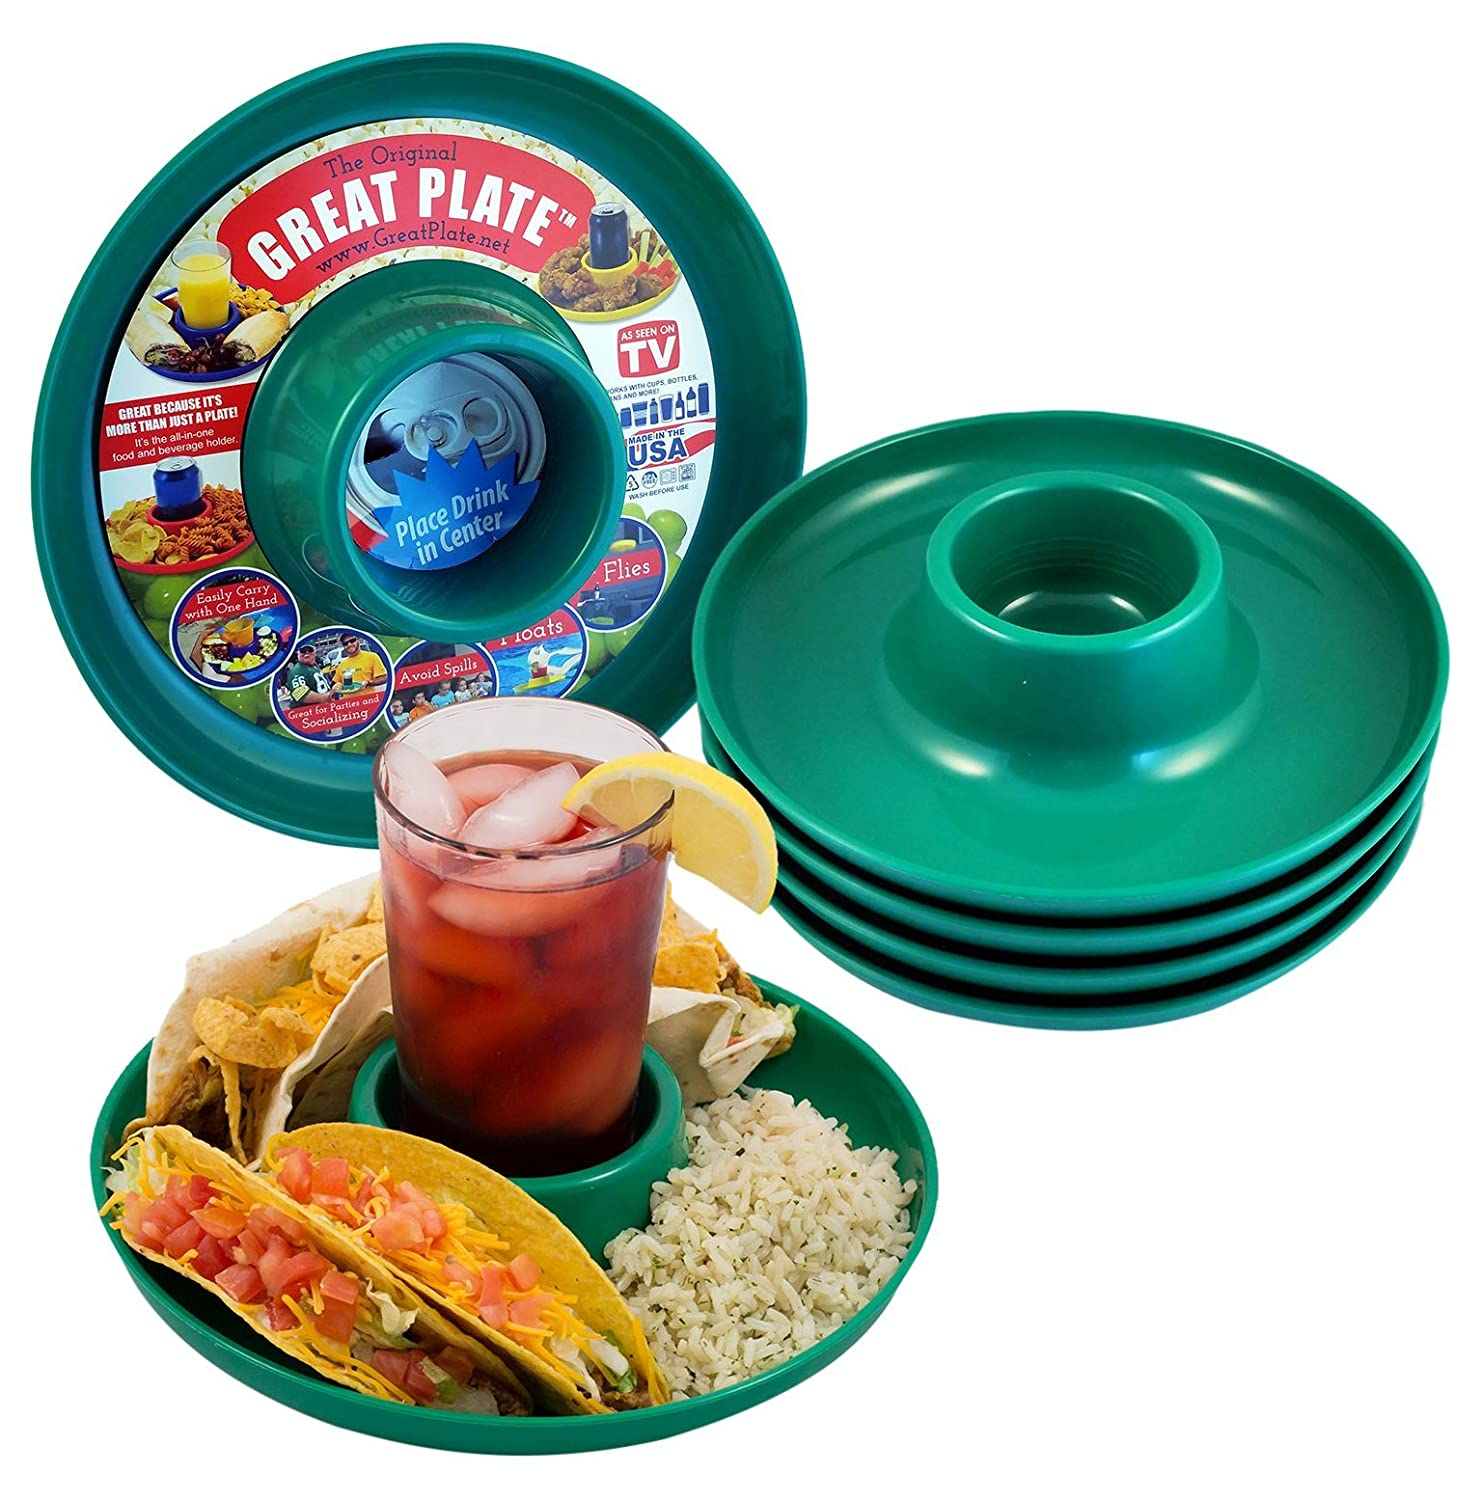 Great Plate Food Beverage Plate (Green) by Great Plate   B01FKZUY3M